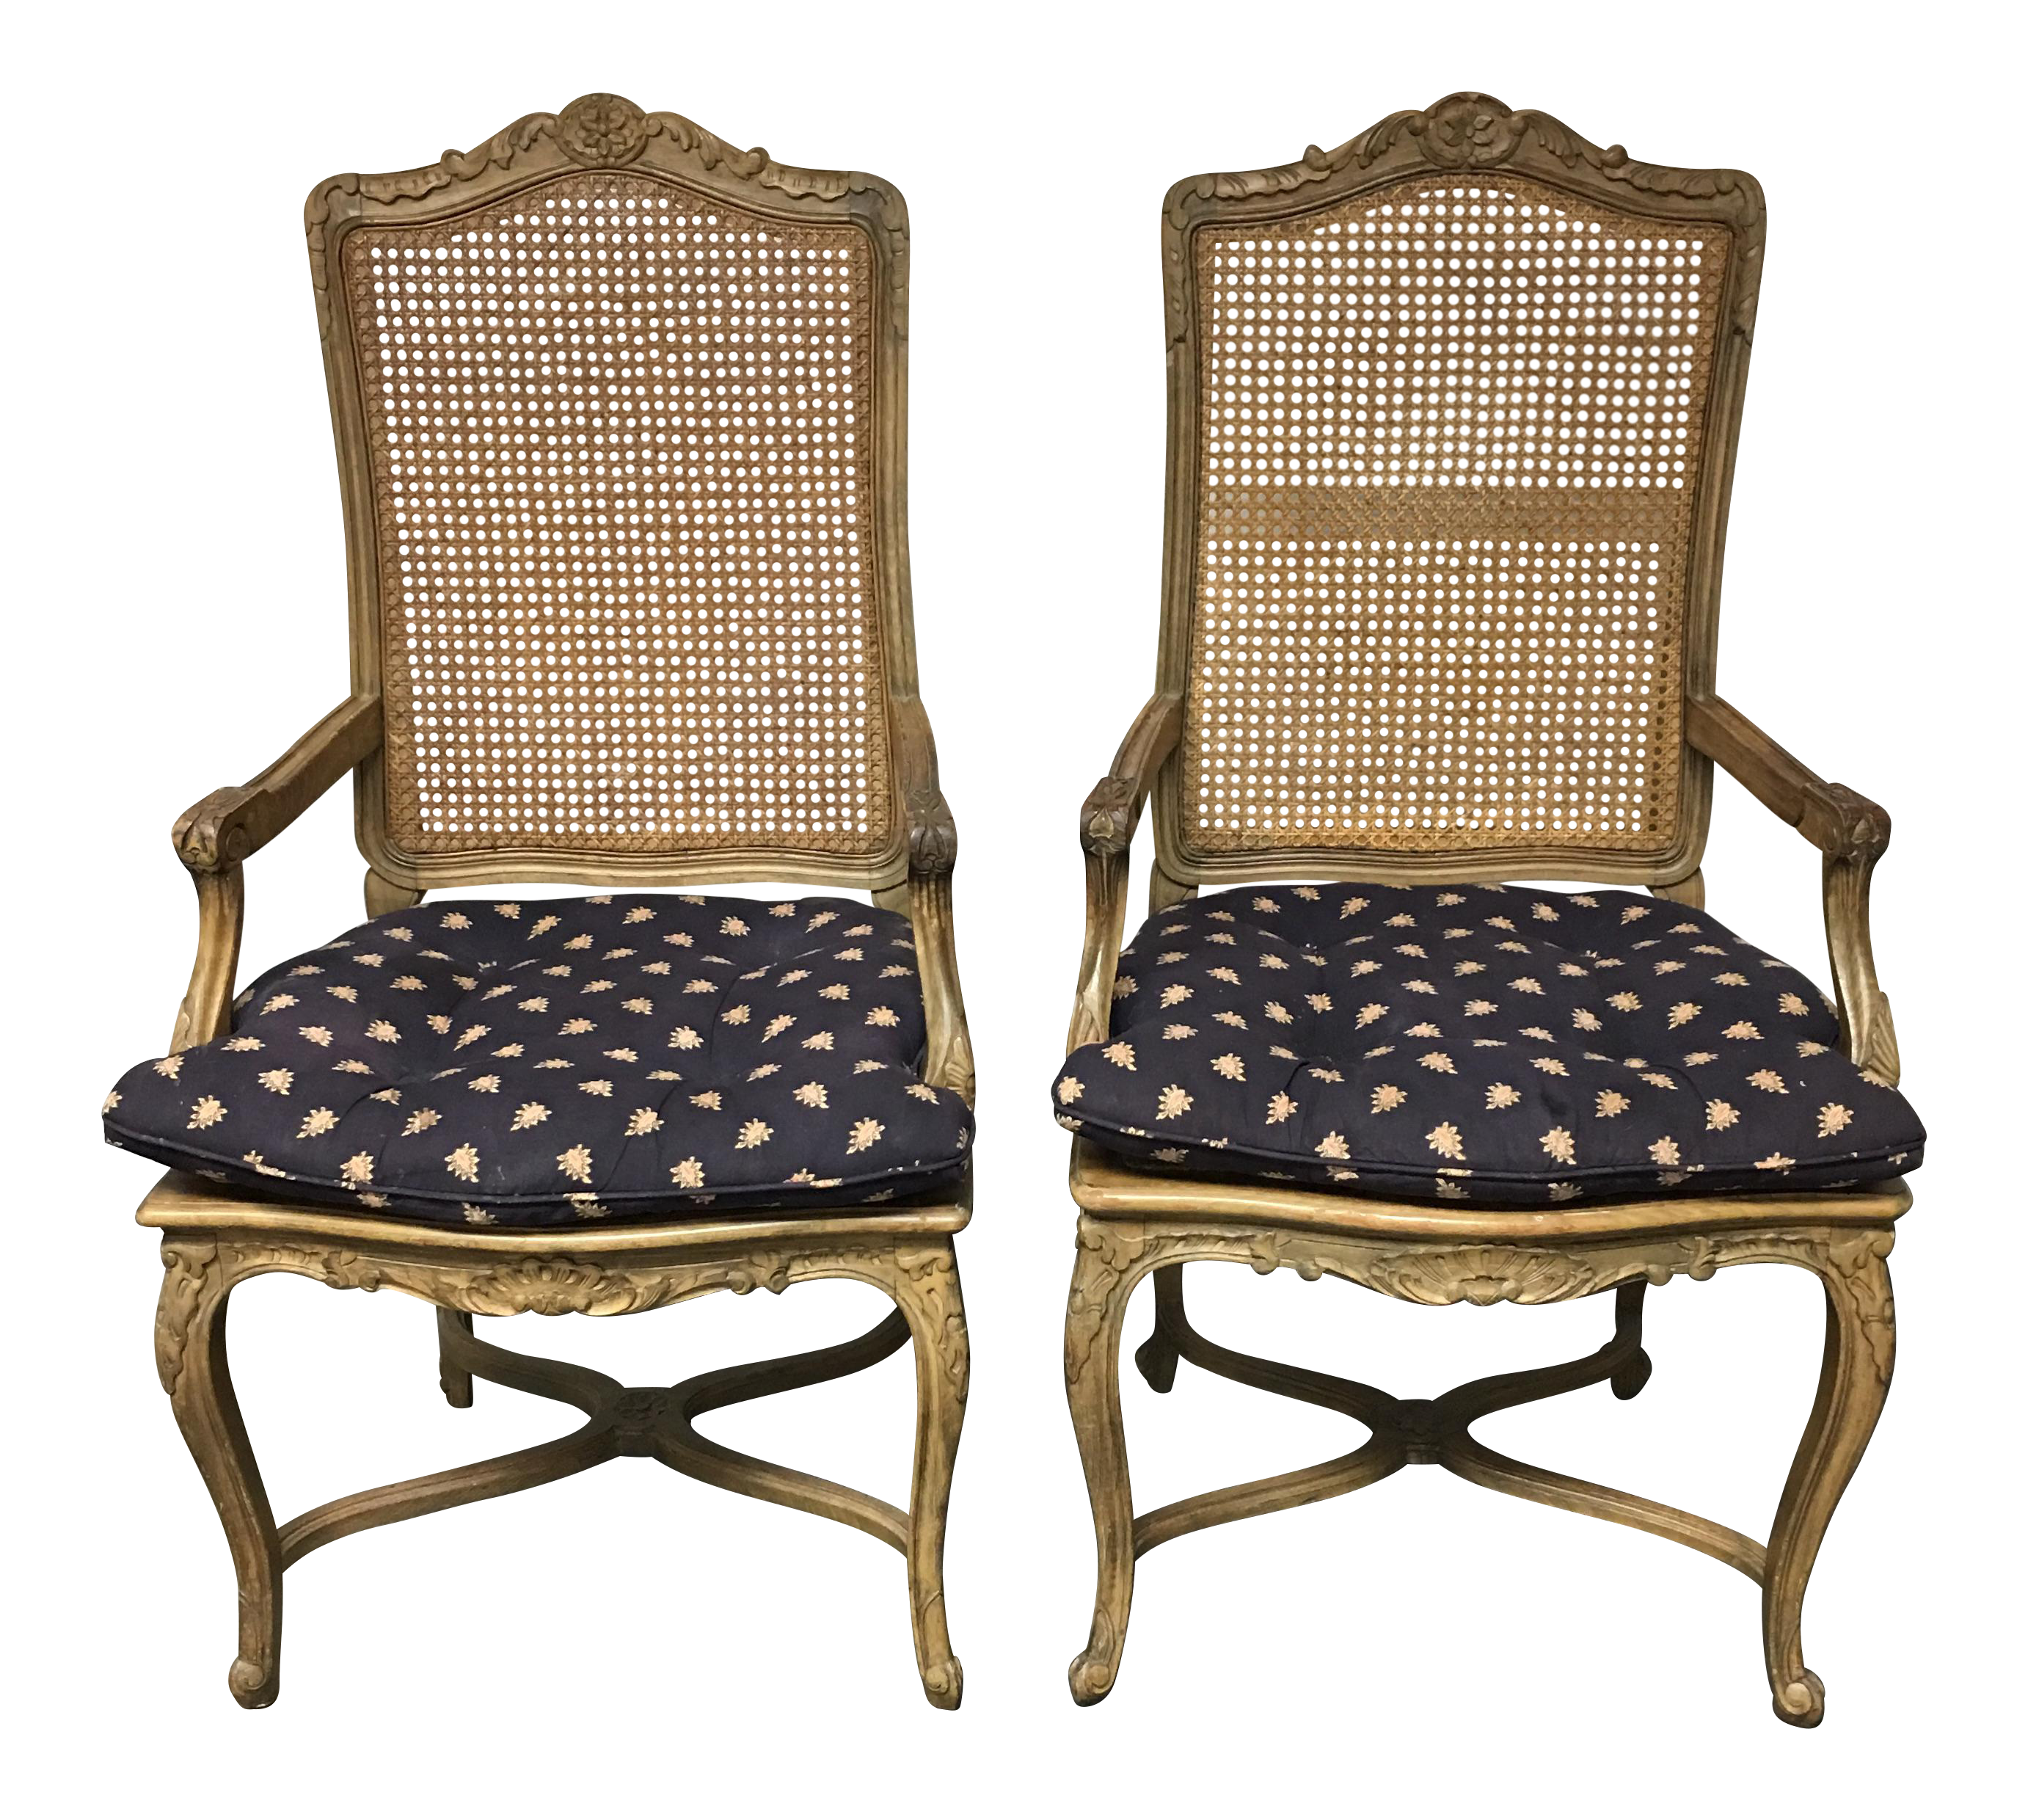 Queen Anne-Style Caned Armchairs - A Pair on Chairish.com  sc 1 th 213 & Queen Anne-Style Caned Armchairs - A Pair | Queen anne Armchairs ...